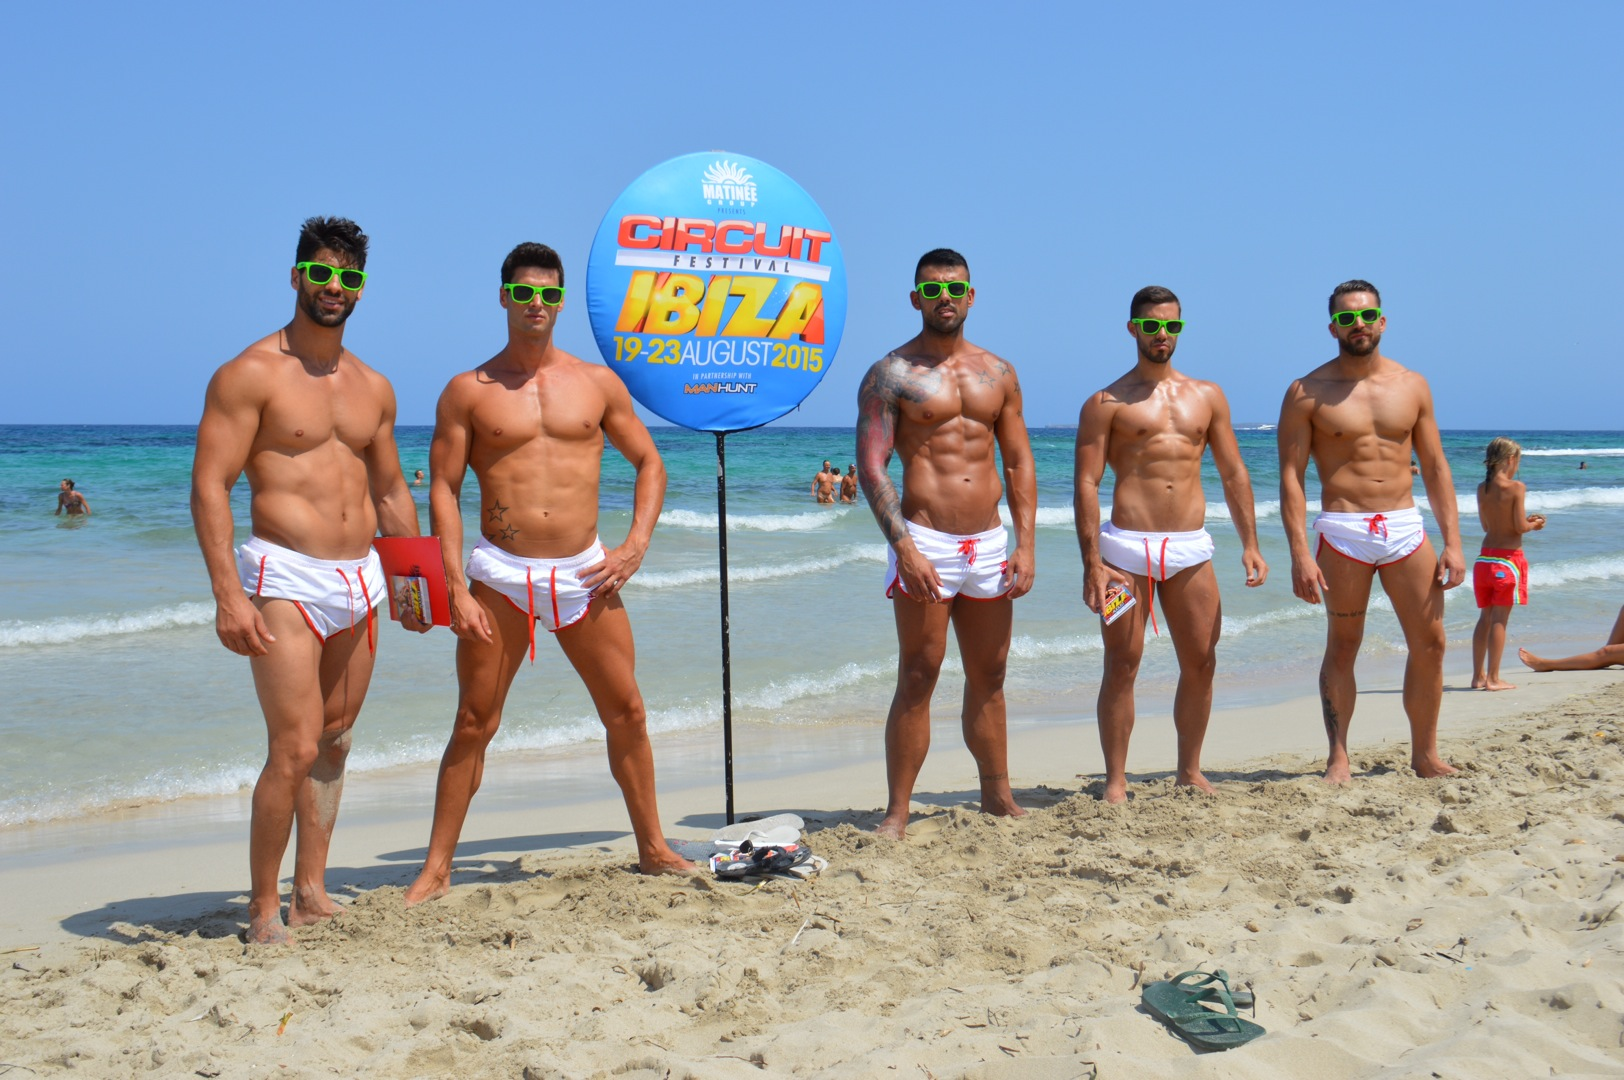 Ibiza Gay Beaches: Poppin' Fun!